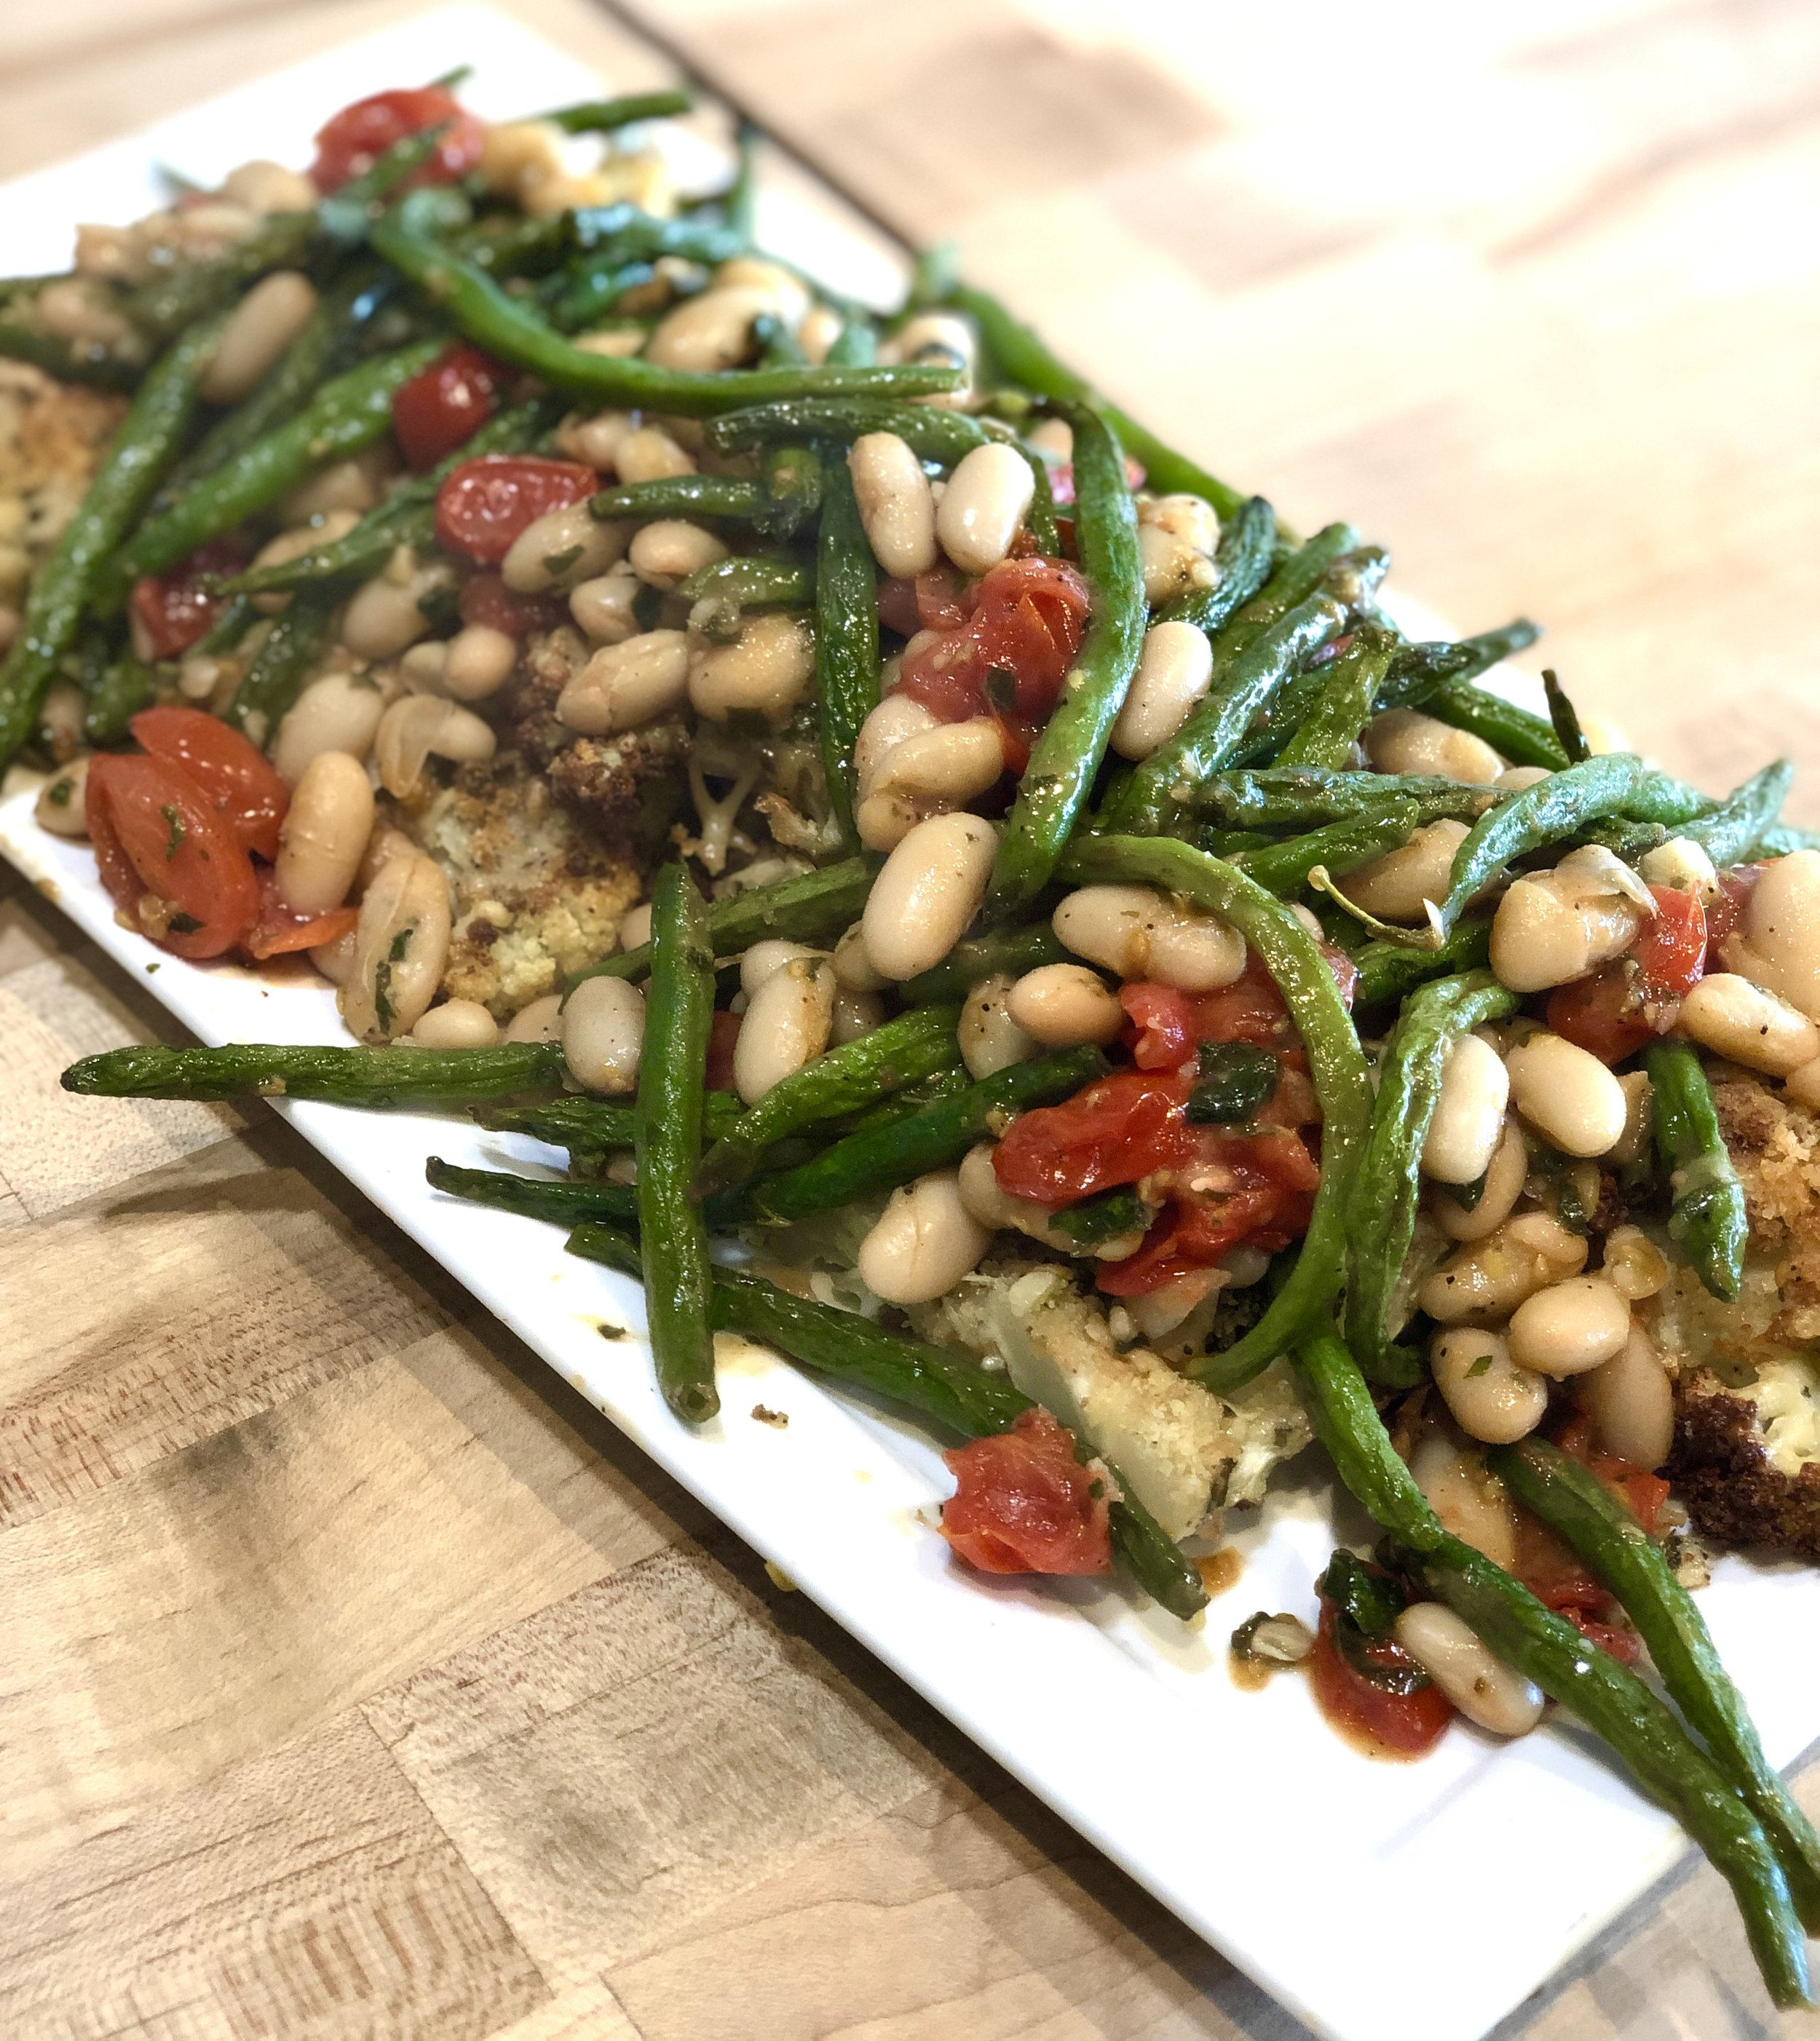 Herb-Crusted Cauliflower Steaks with Beans and Tomatoes